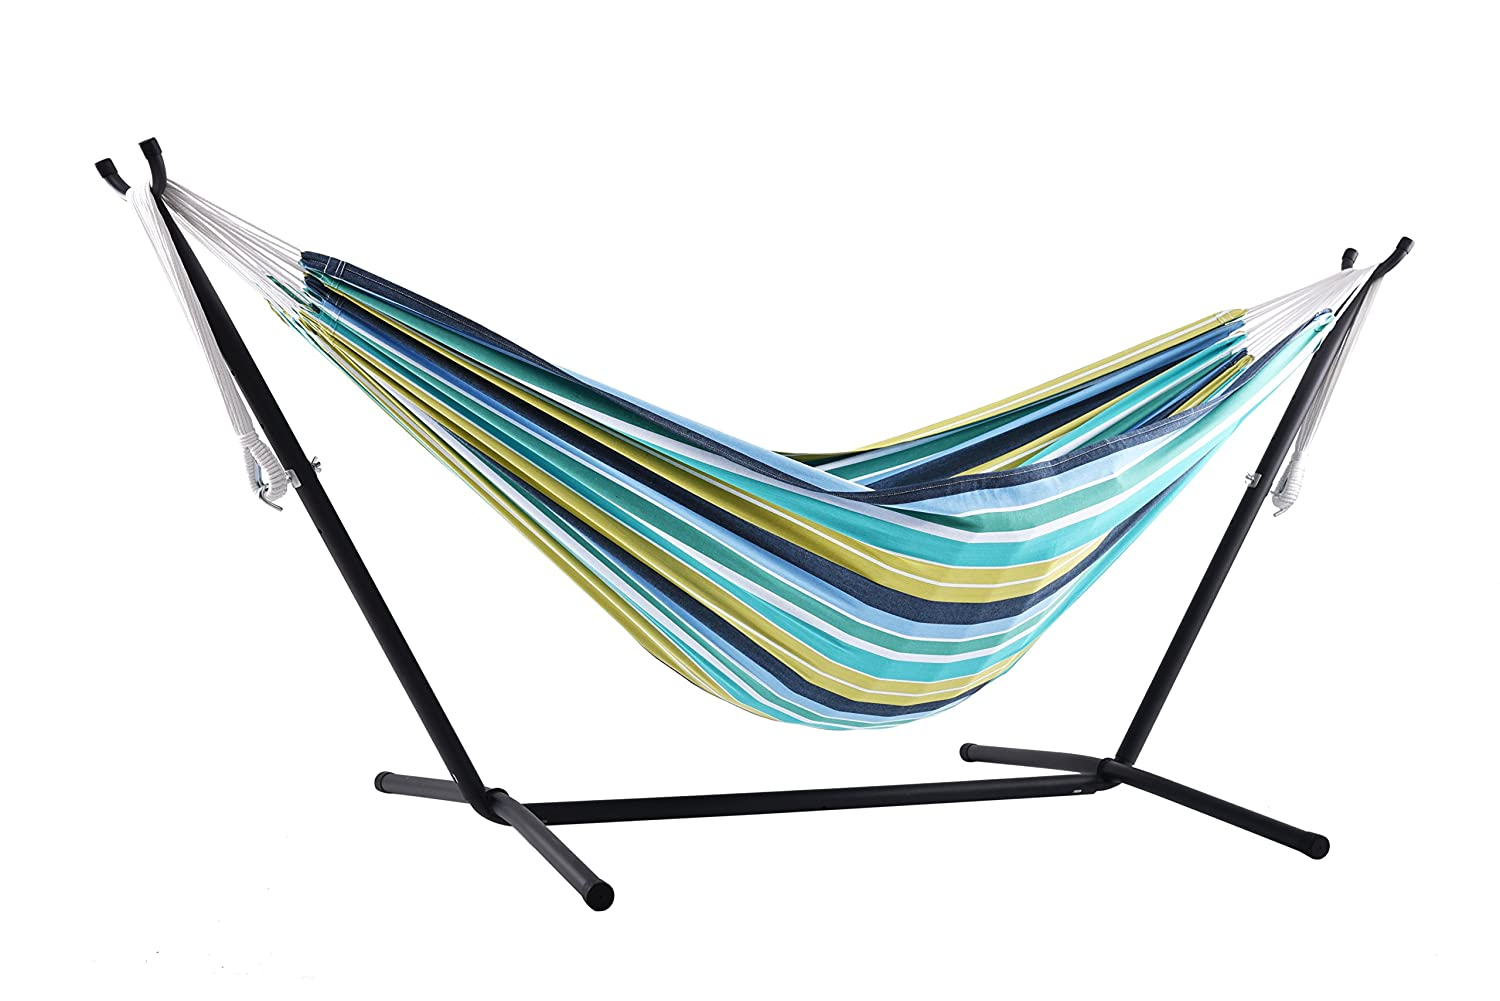 d4a3e0f1a11 Amazon.com : Vivere Double Cotton Combo Hammock with Stand, Cayo Reef :  Garden & Outdoor